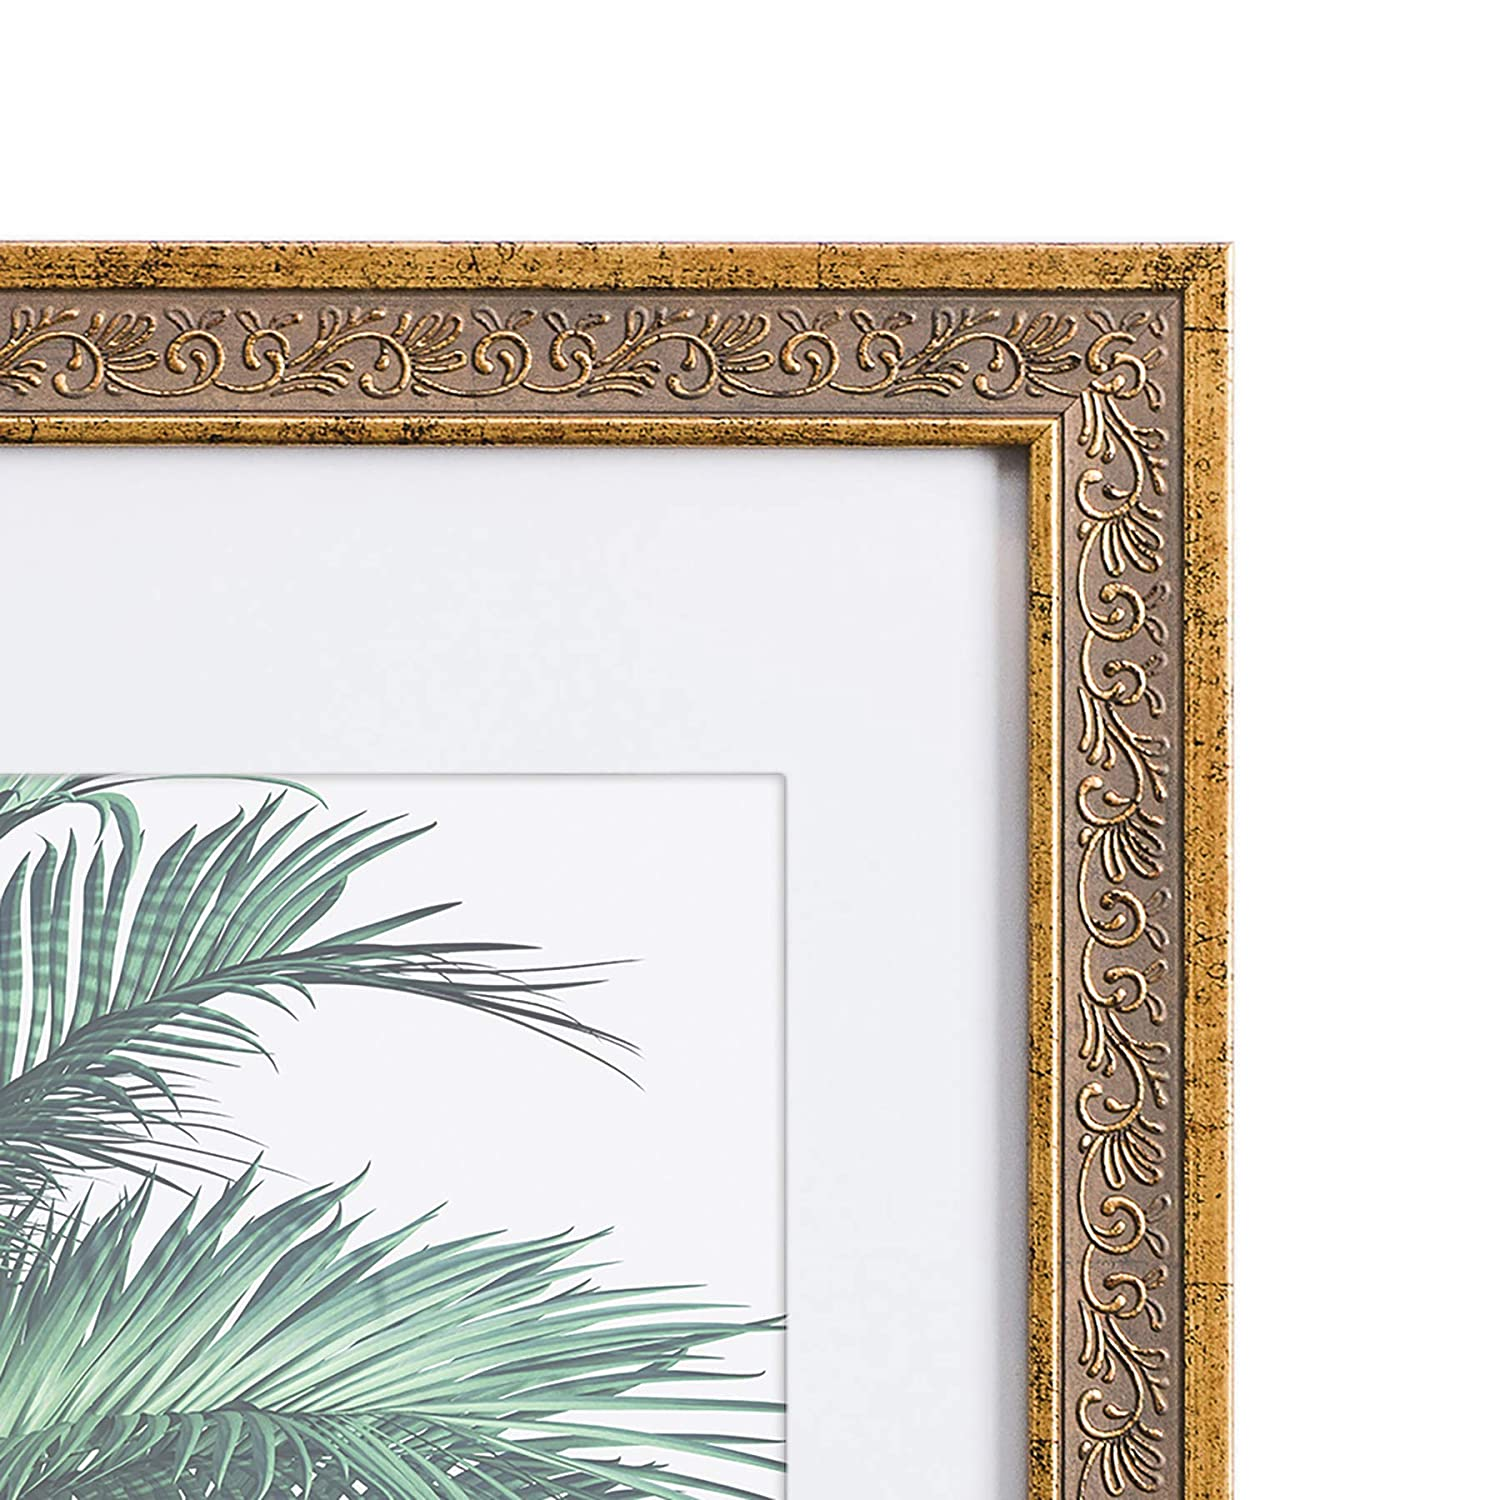 Matted to 8x10 11x14 Picture Frame Antique Gold Frames by EcoHome